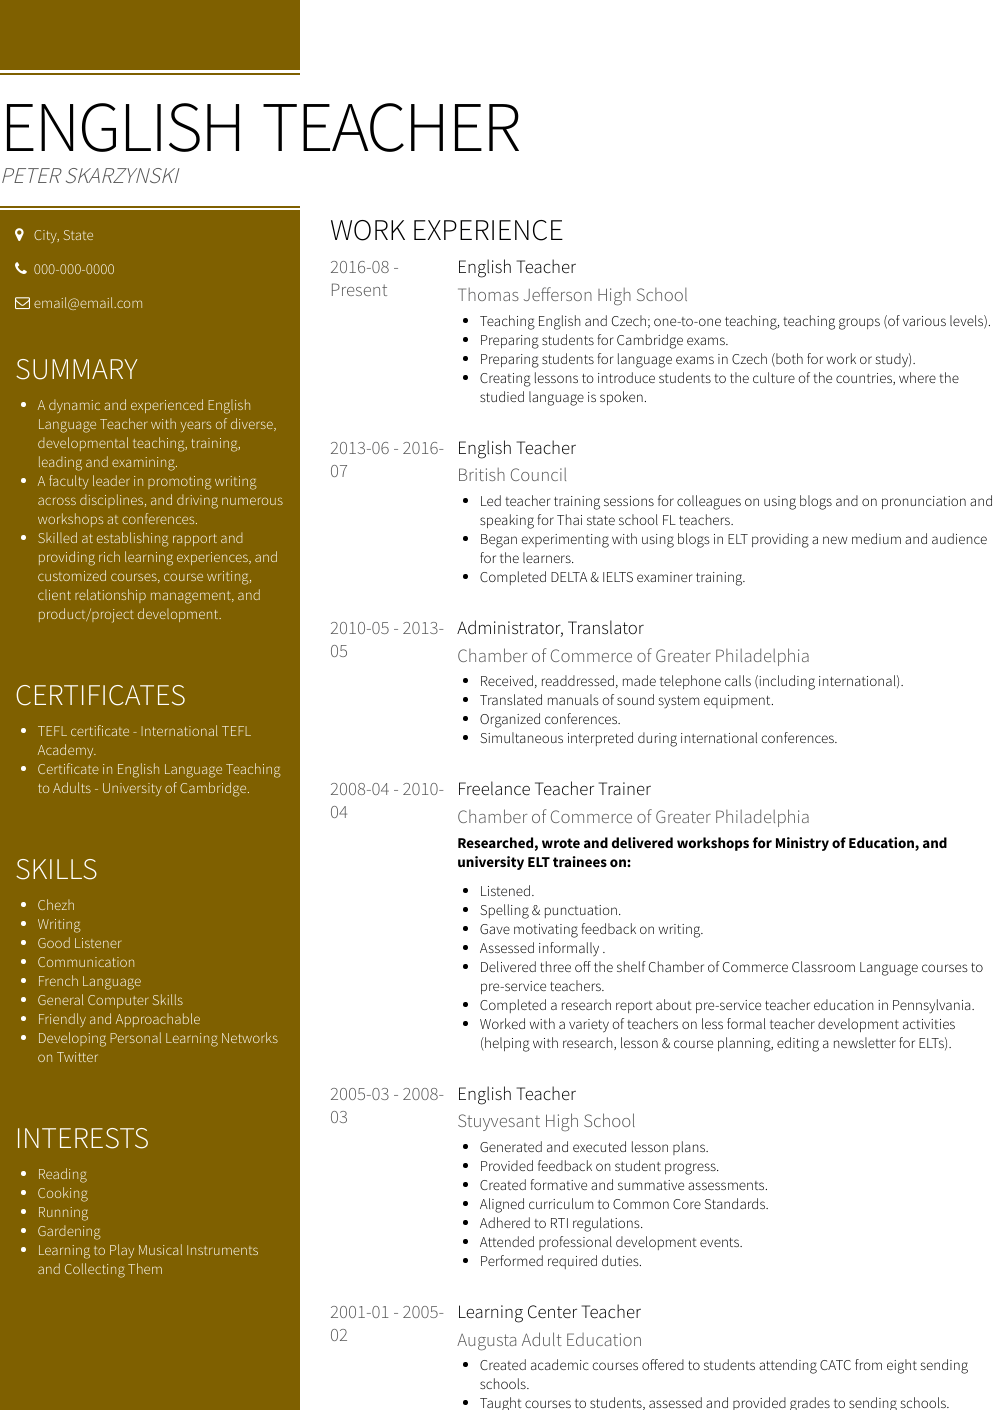 English Teacher Resume Sample and Template